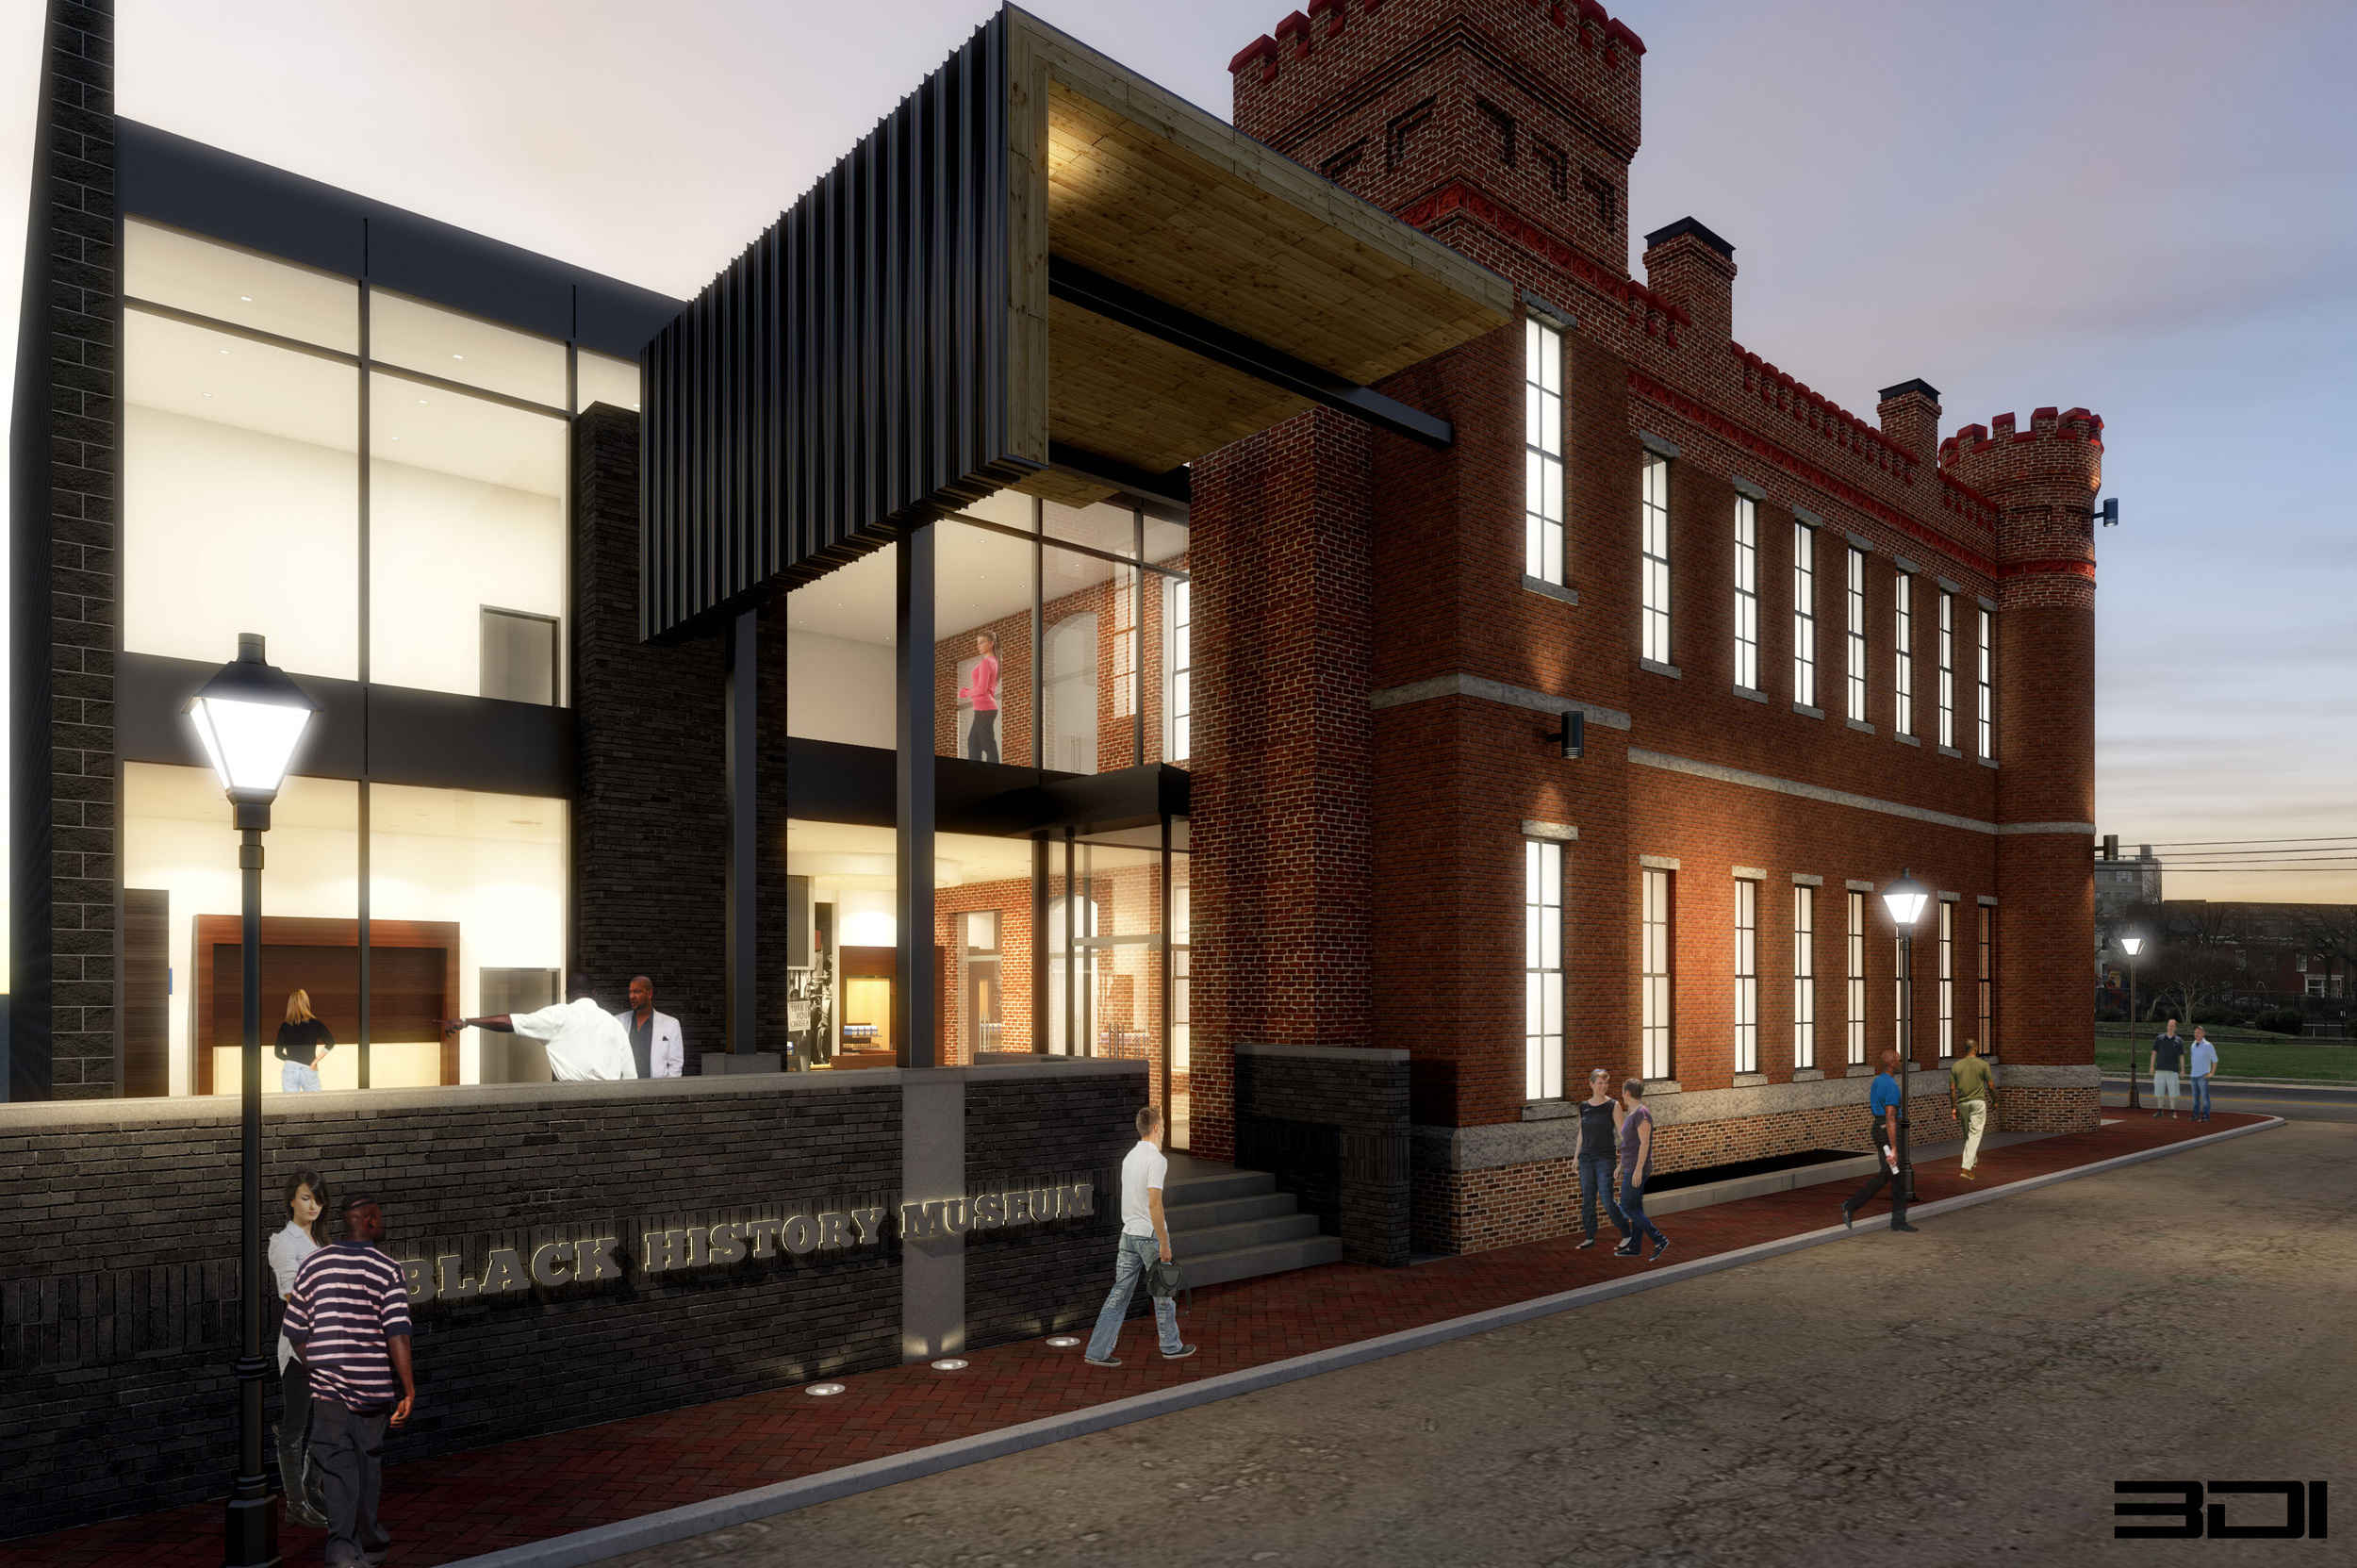 The Black History Museum & Cultural Center of Virginia (housed in the former Leigh Street Armory).Courtesy of the  blackhistorymuseum.org .